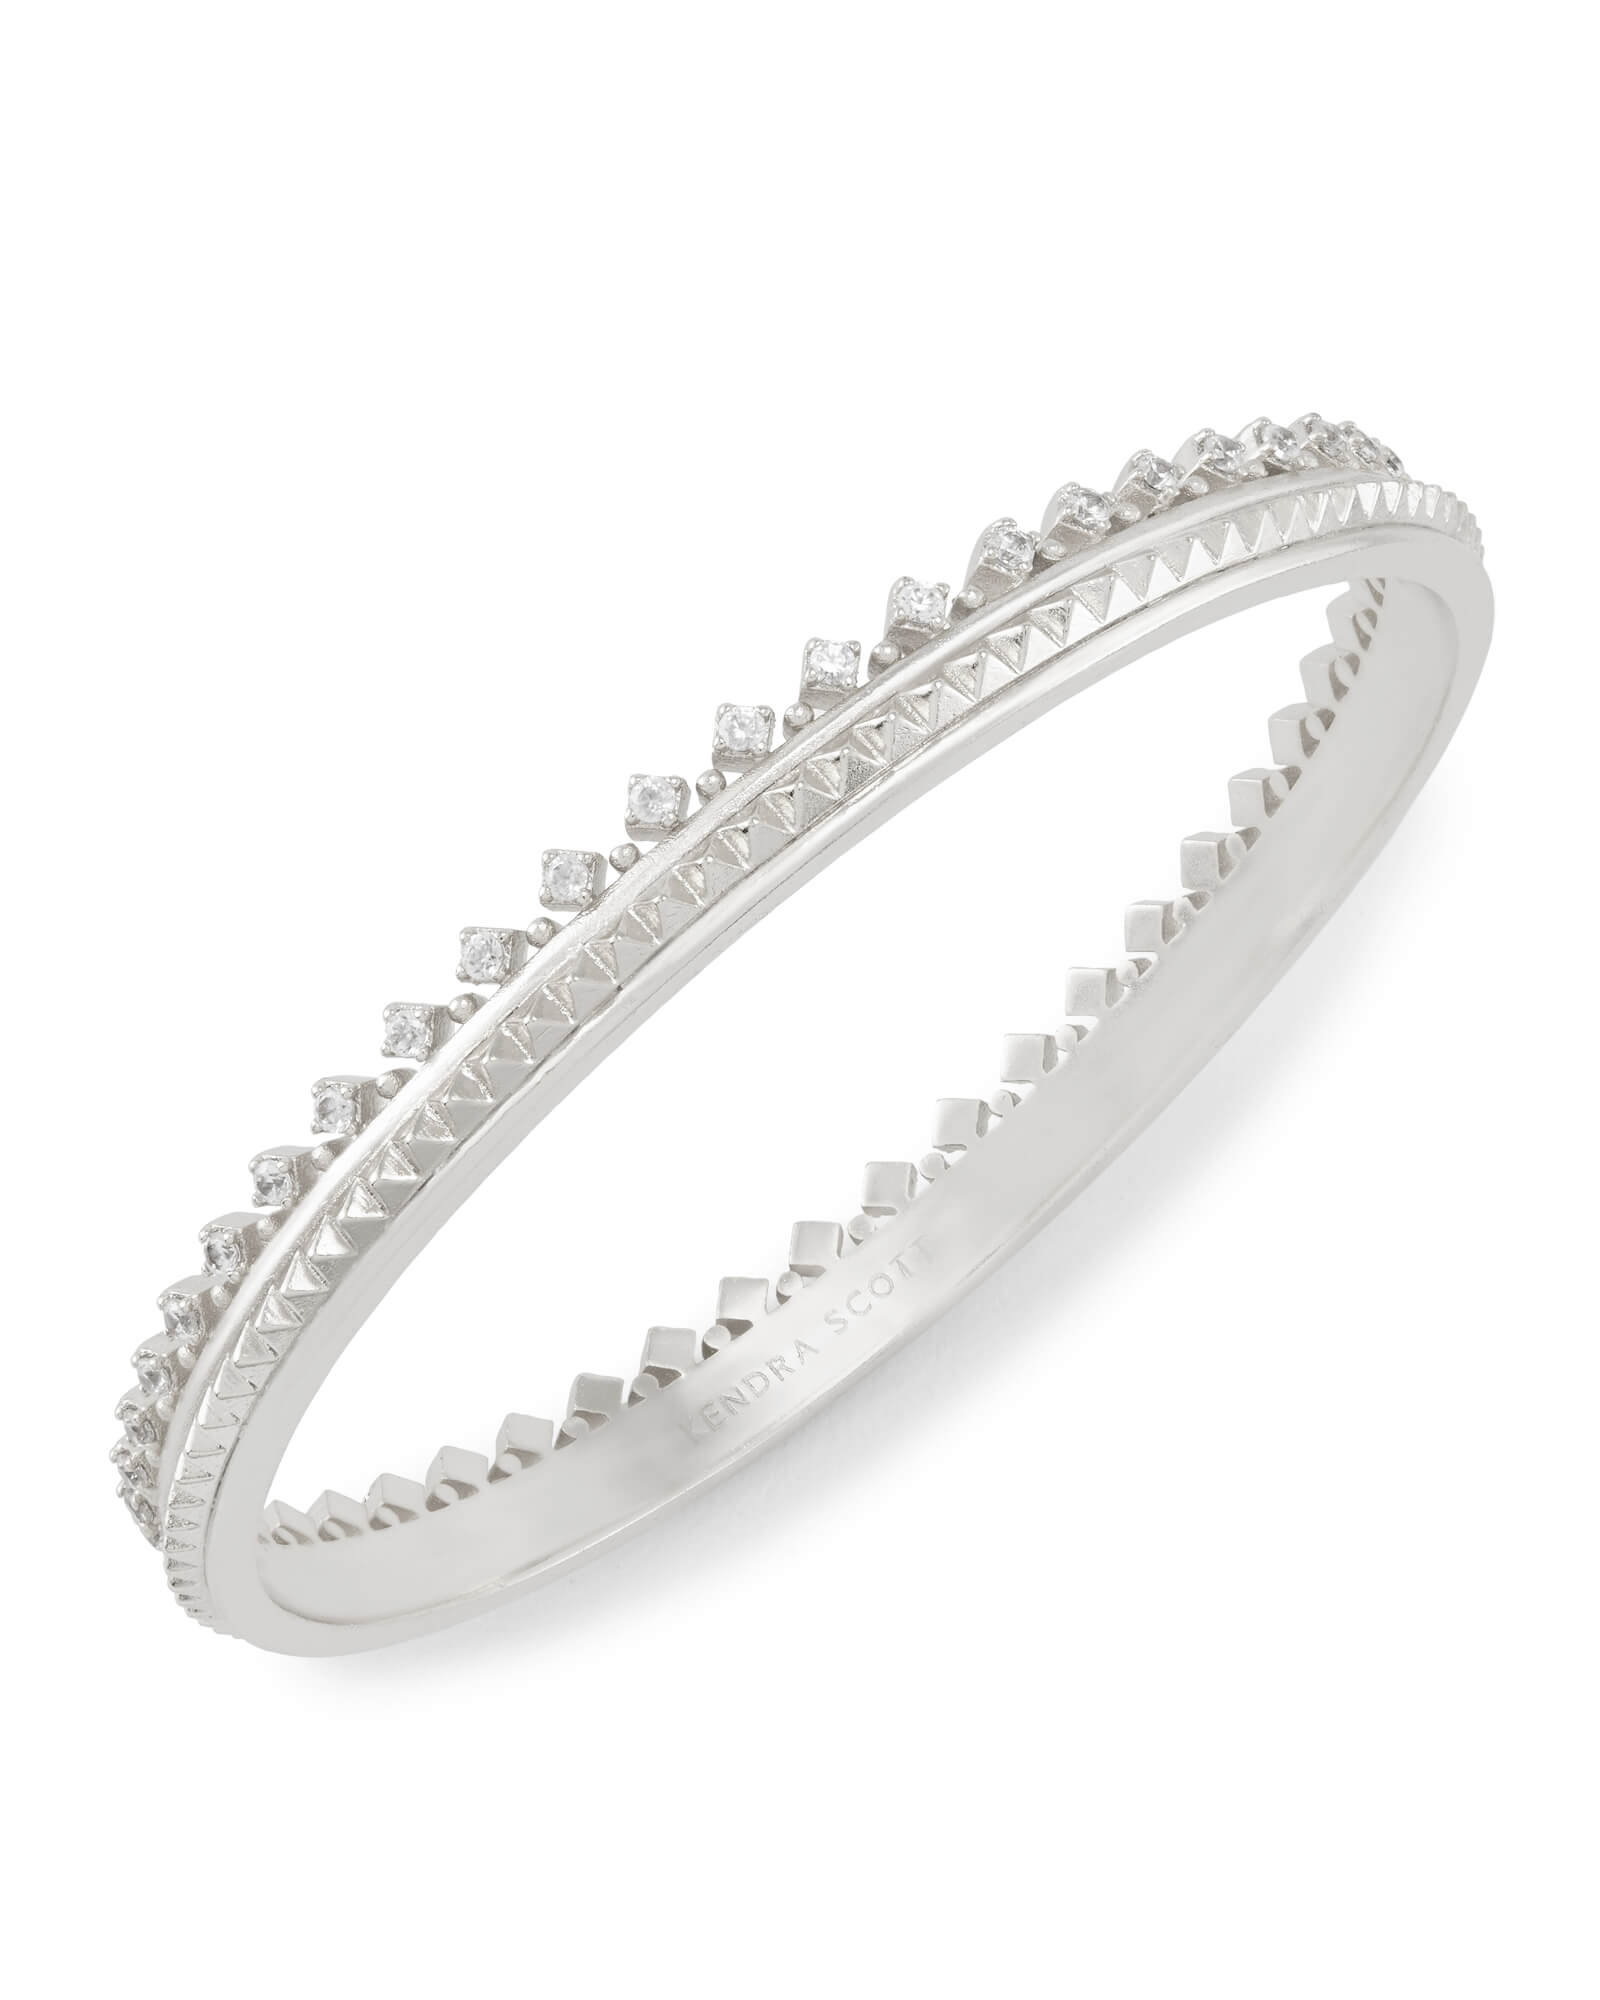 Mary Caroline Bangle Bracelet in Silver